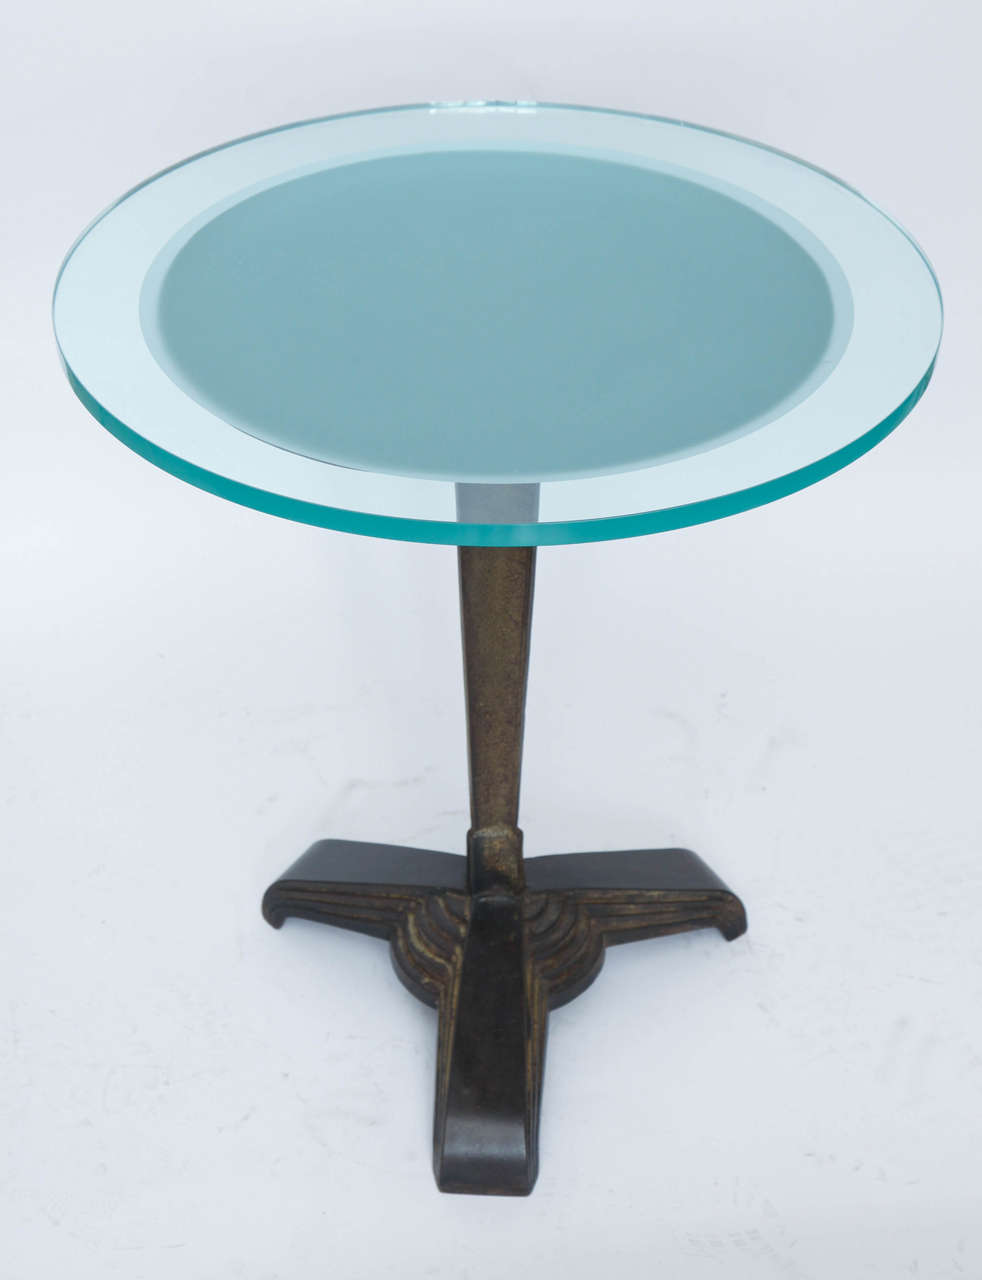 American 1920s Modernist Art Deco Table For Sale 1